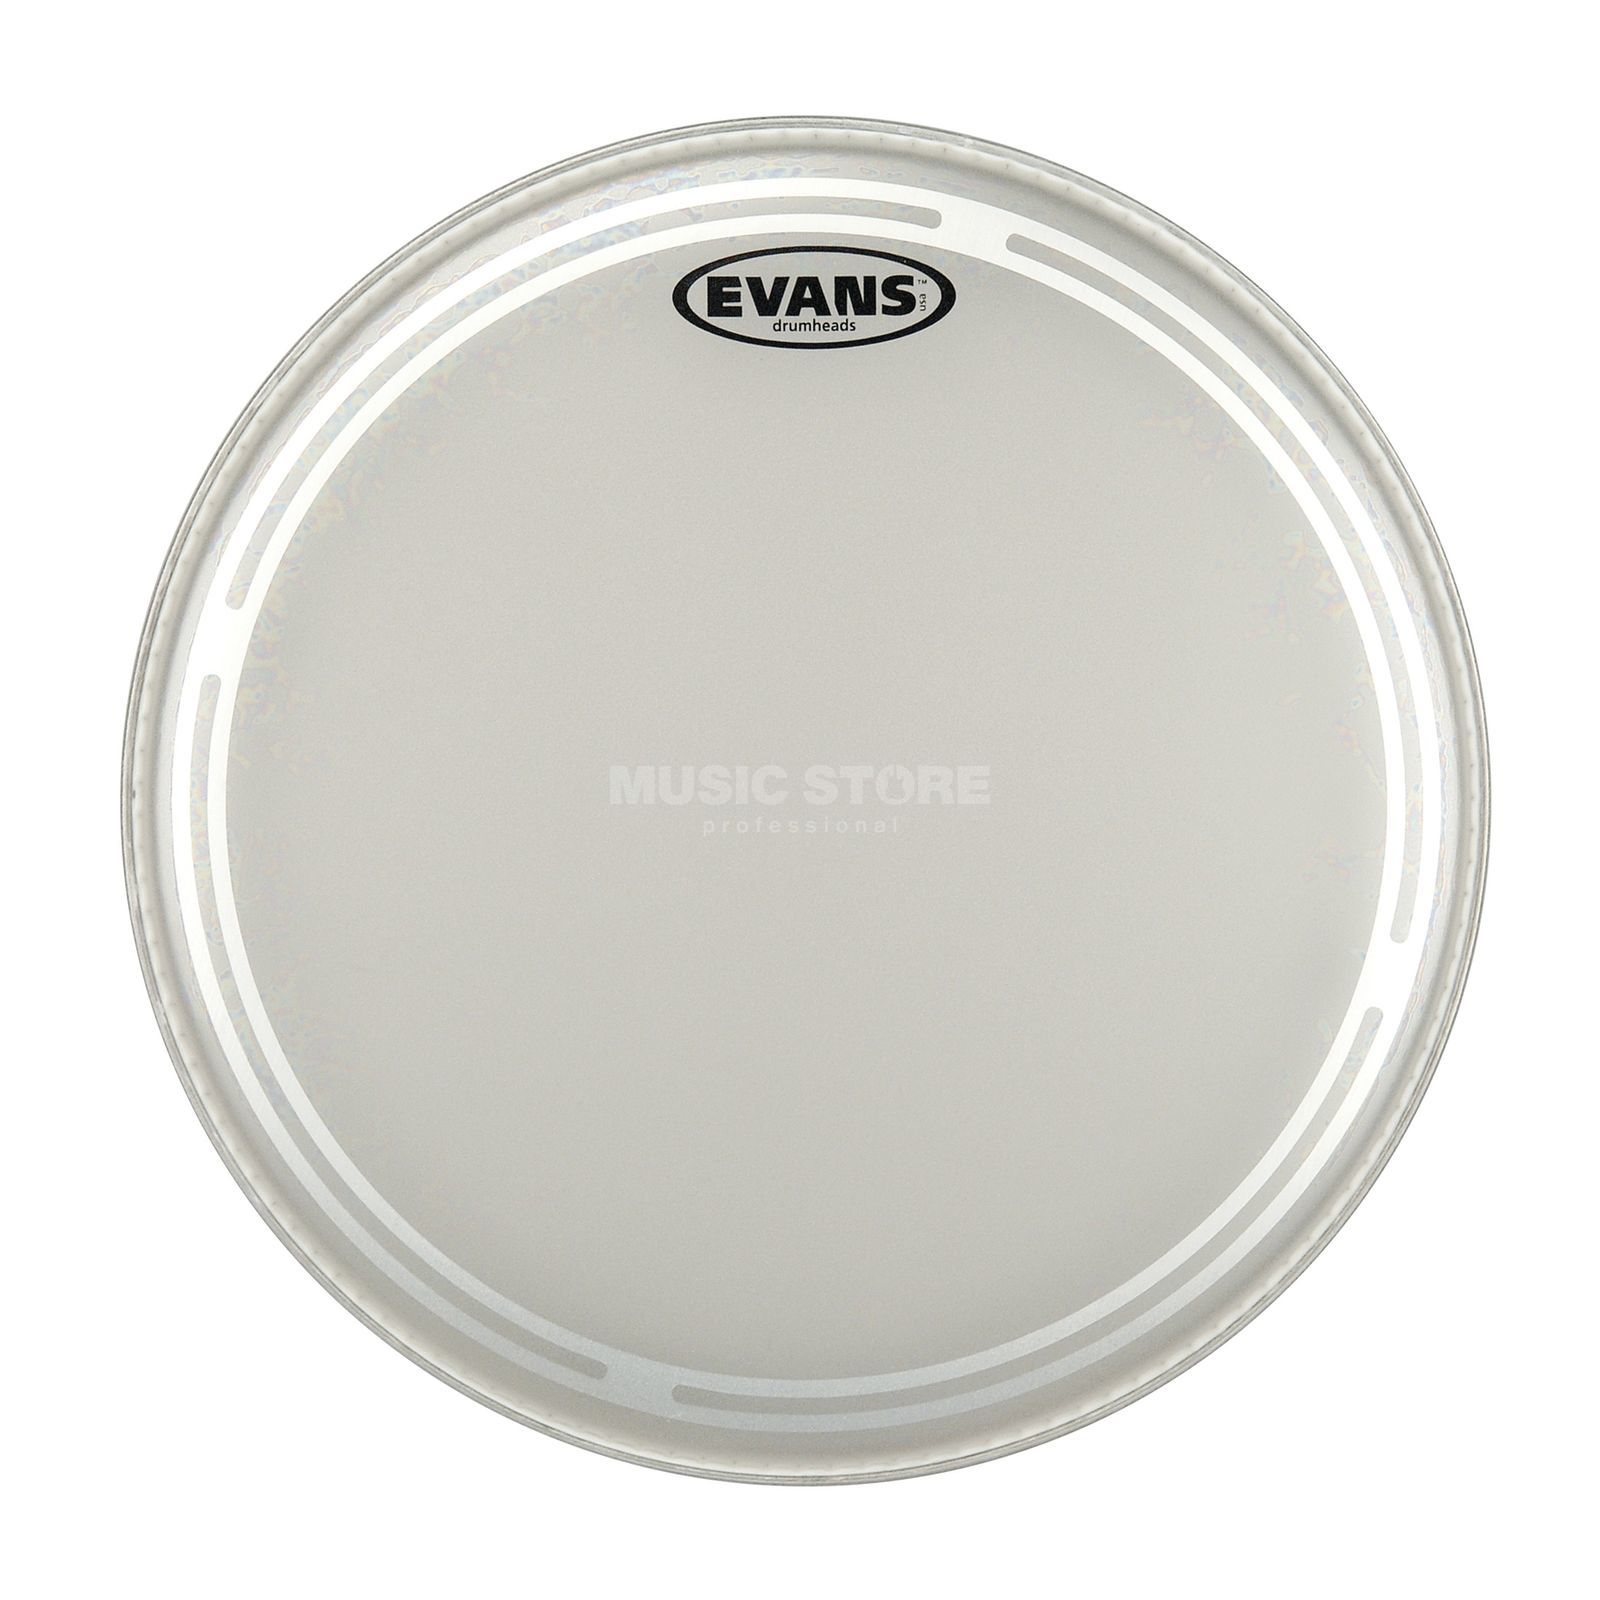 "Evans EC1, 18"", coated, Tom Batter, B-Stock Zdjęcie produktu"